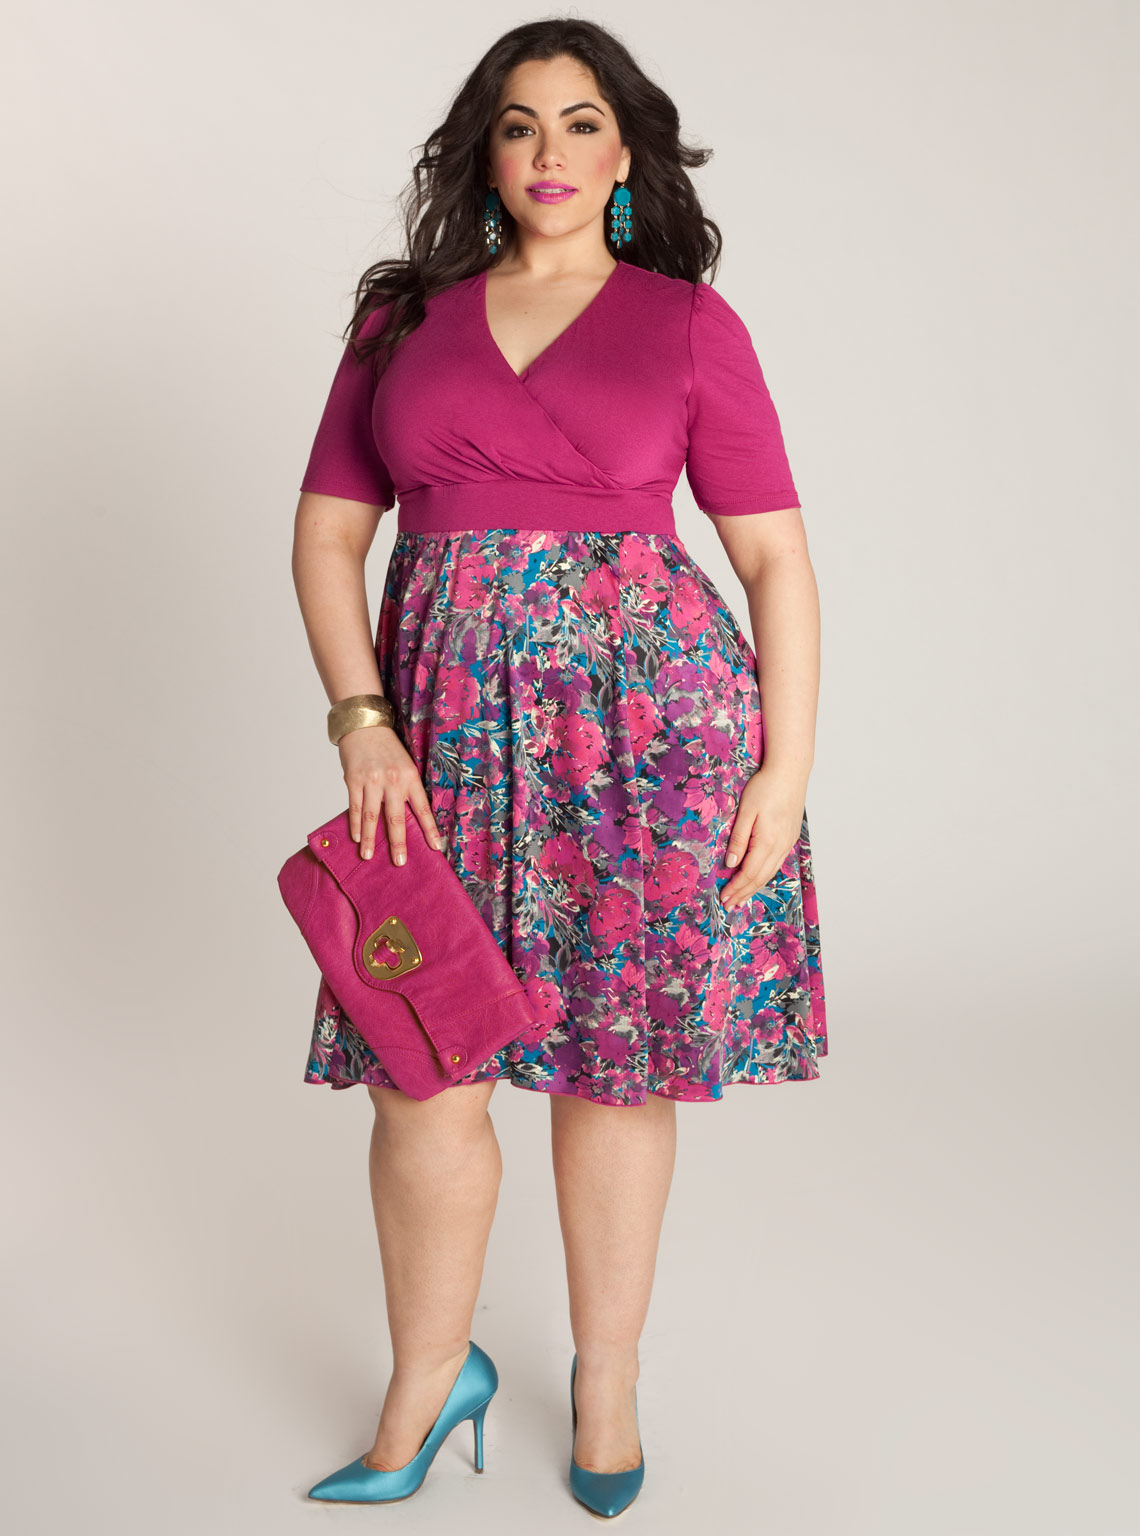 Maxi Skirt Outfits Plus Size 2014 2015 Fashion Trends